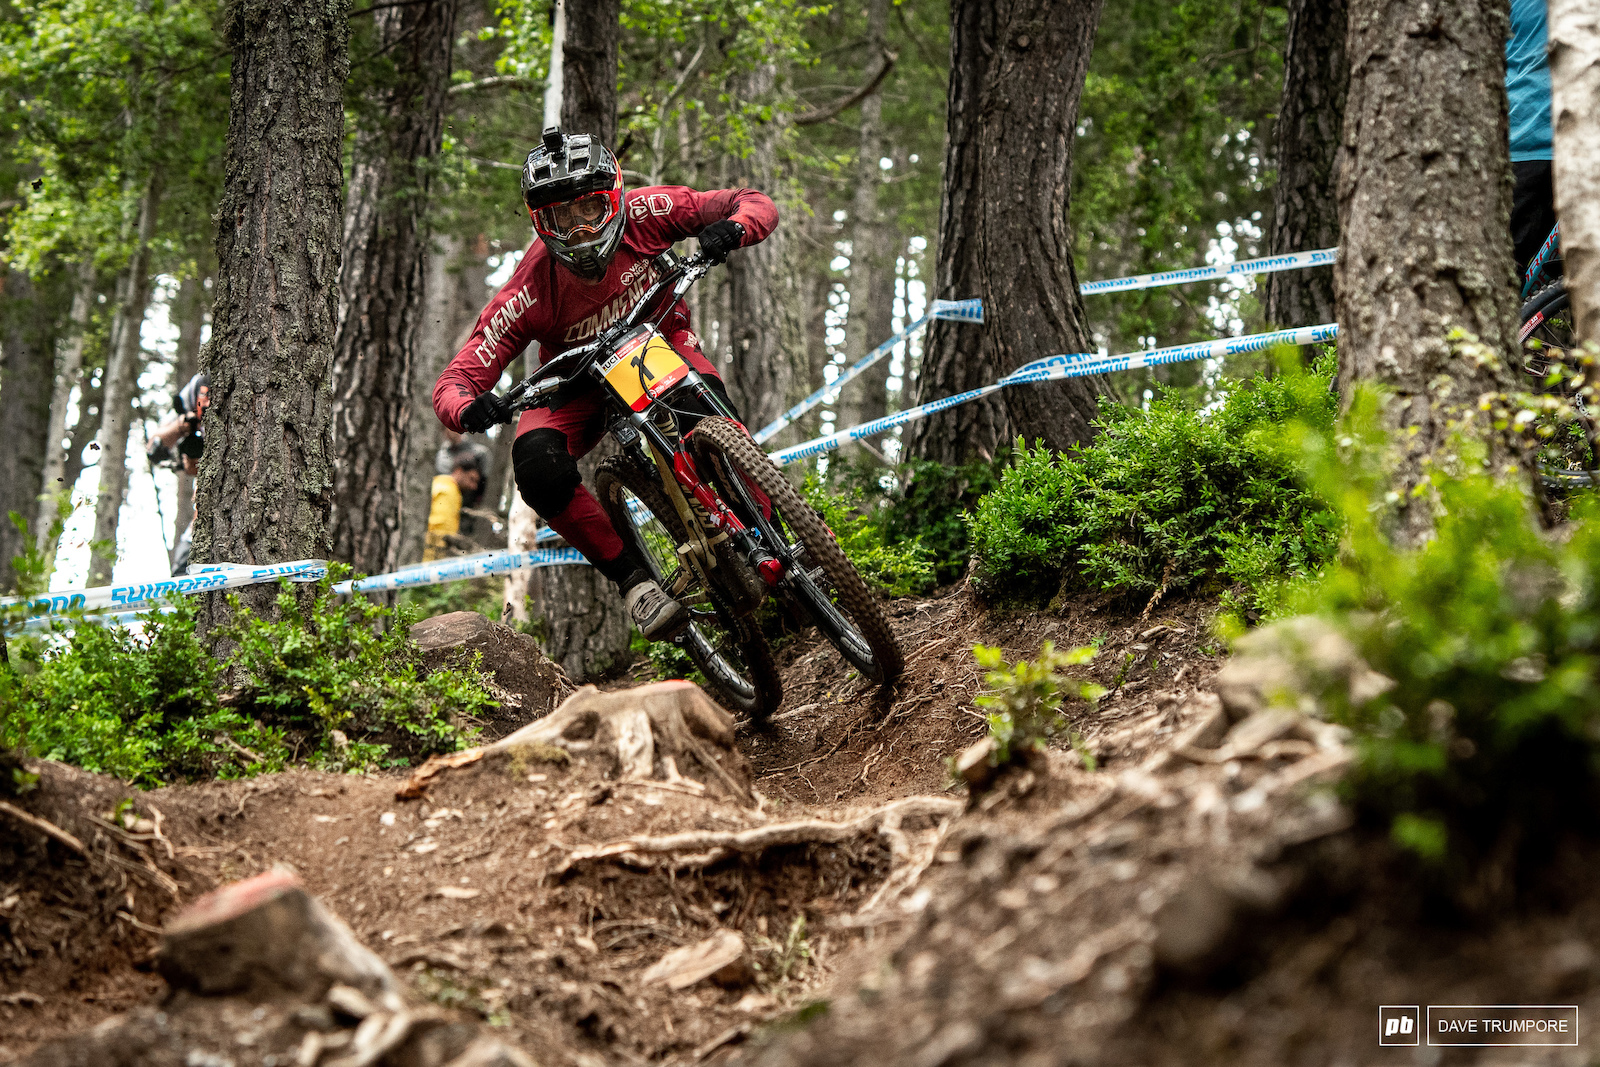 It s no surprise that Amaury Pierron looks fast smooth and confident on track in Andorra.